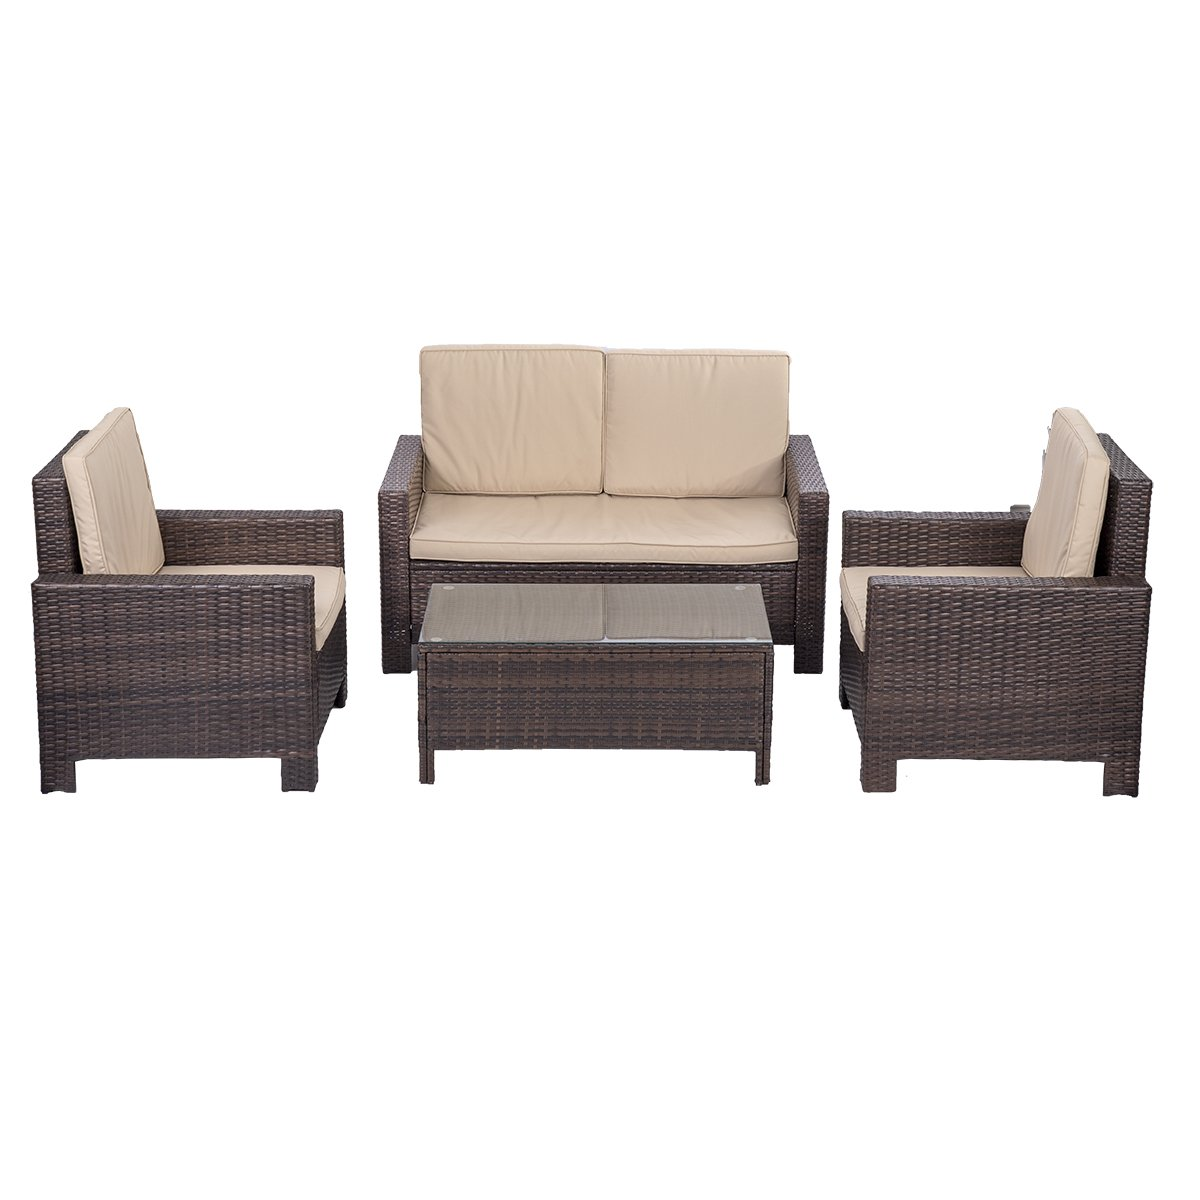 Outdoor Patio Sofa Set Sectional Furniture PE Wicker Rattan Deck Couch